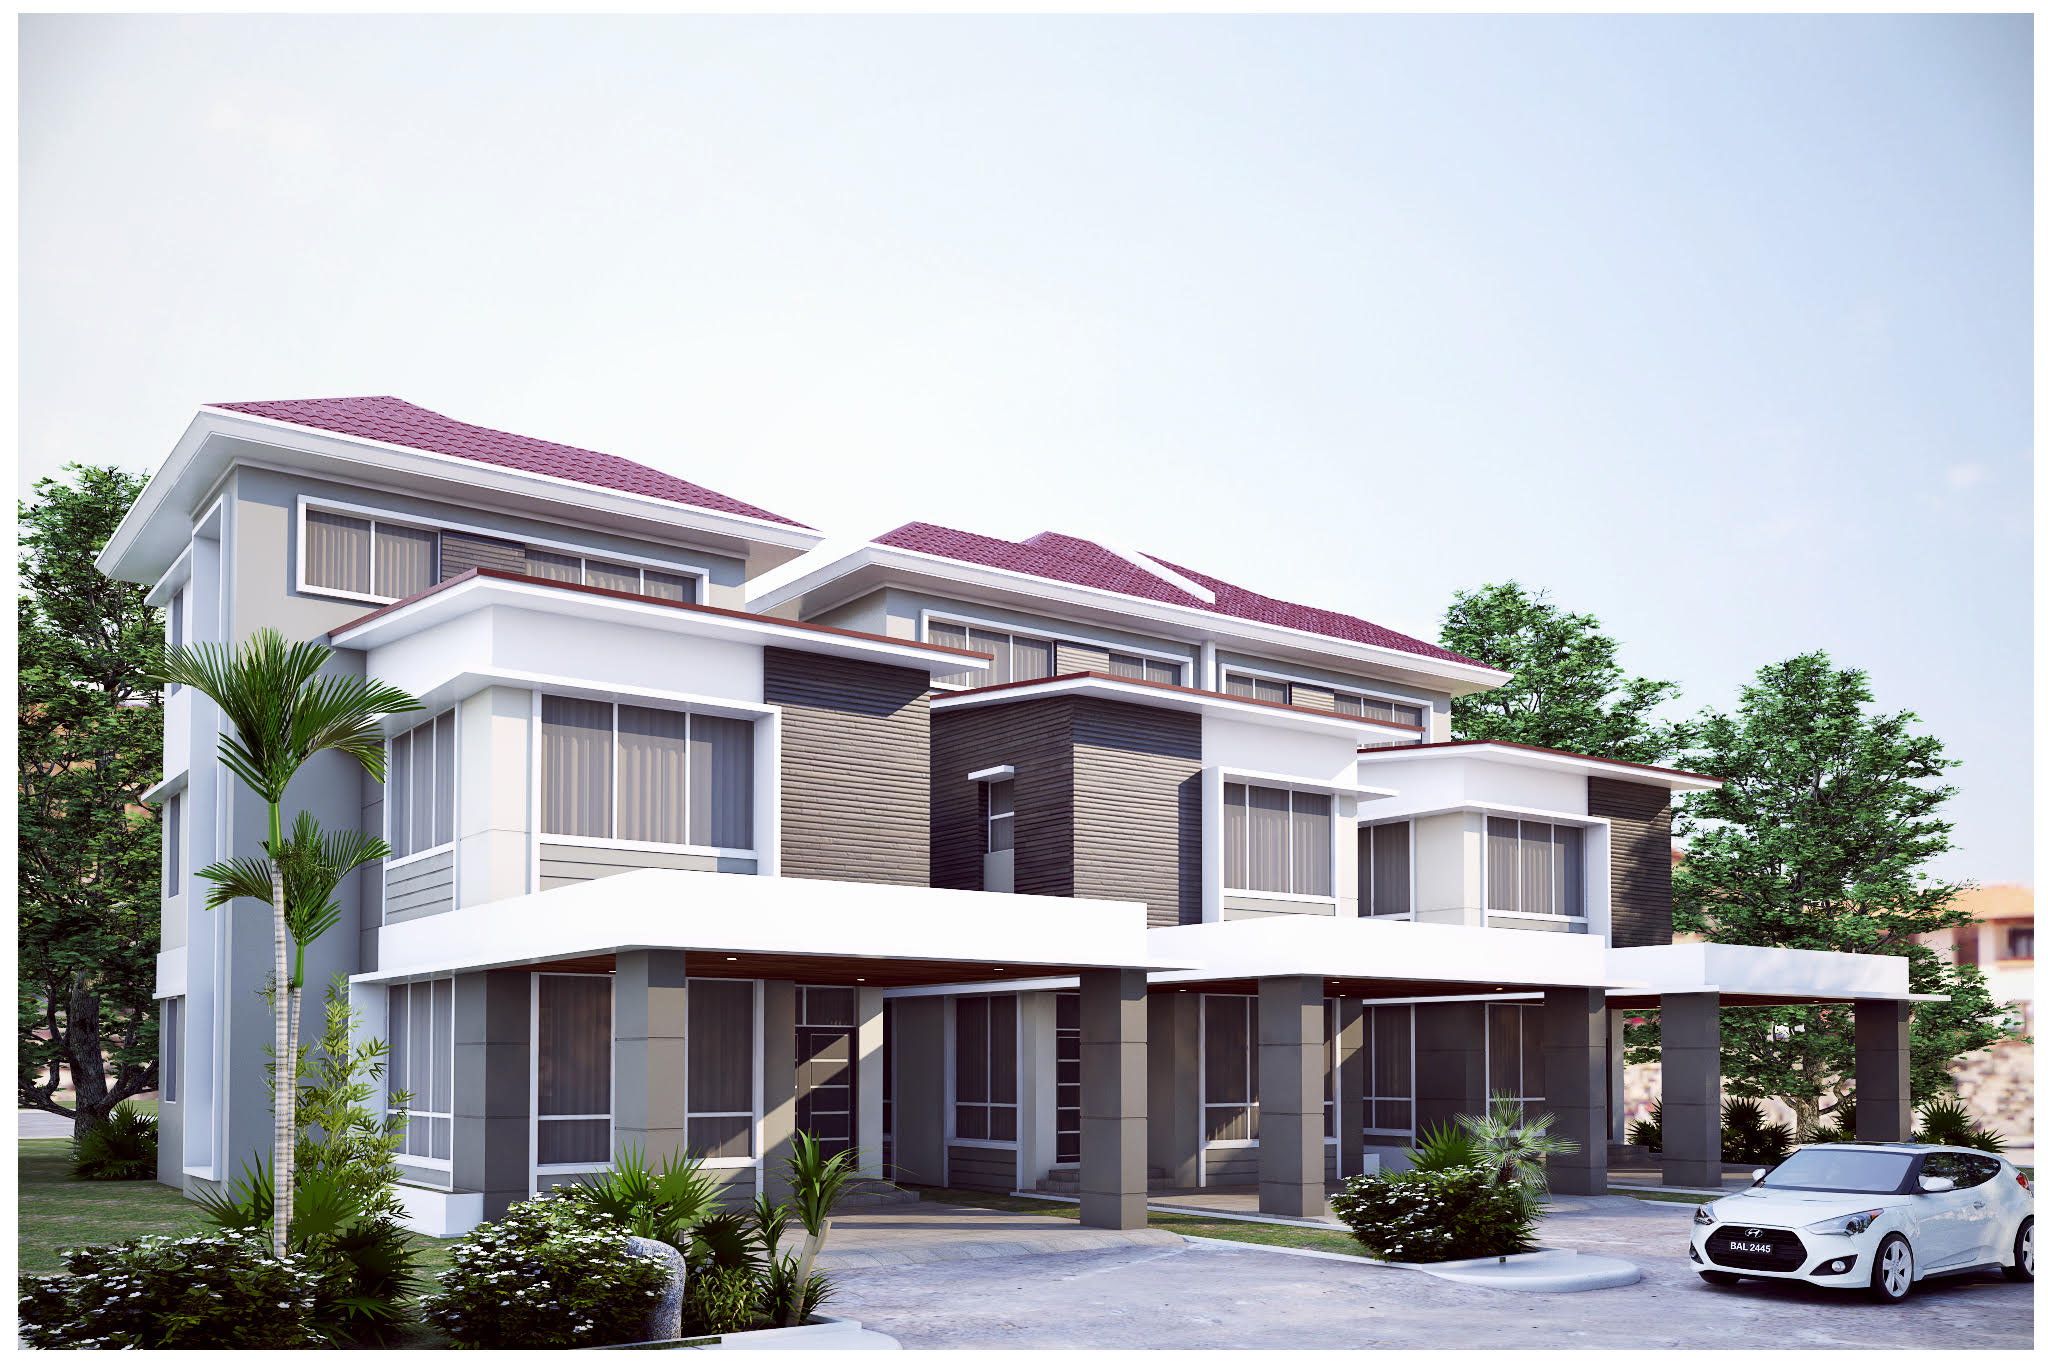 Pan villa properties proposed the palm tanah jambu 3 for Terrace of the house